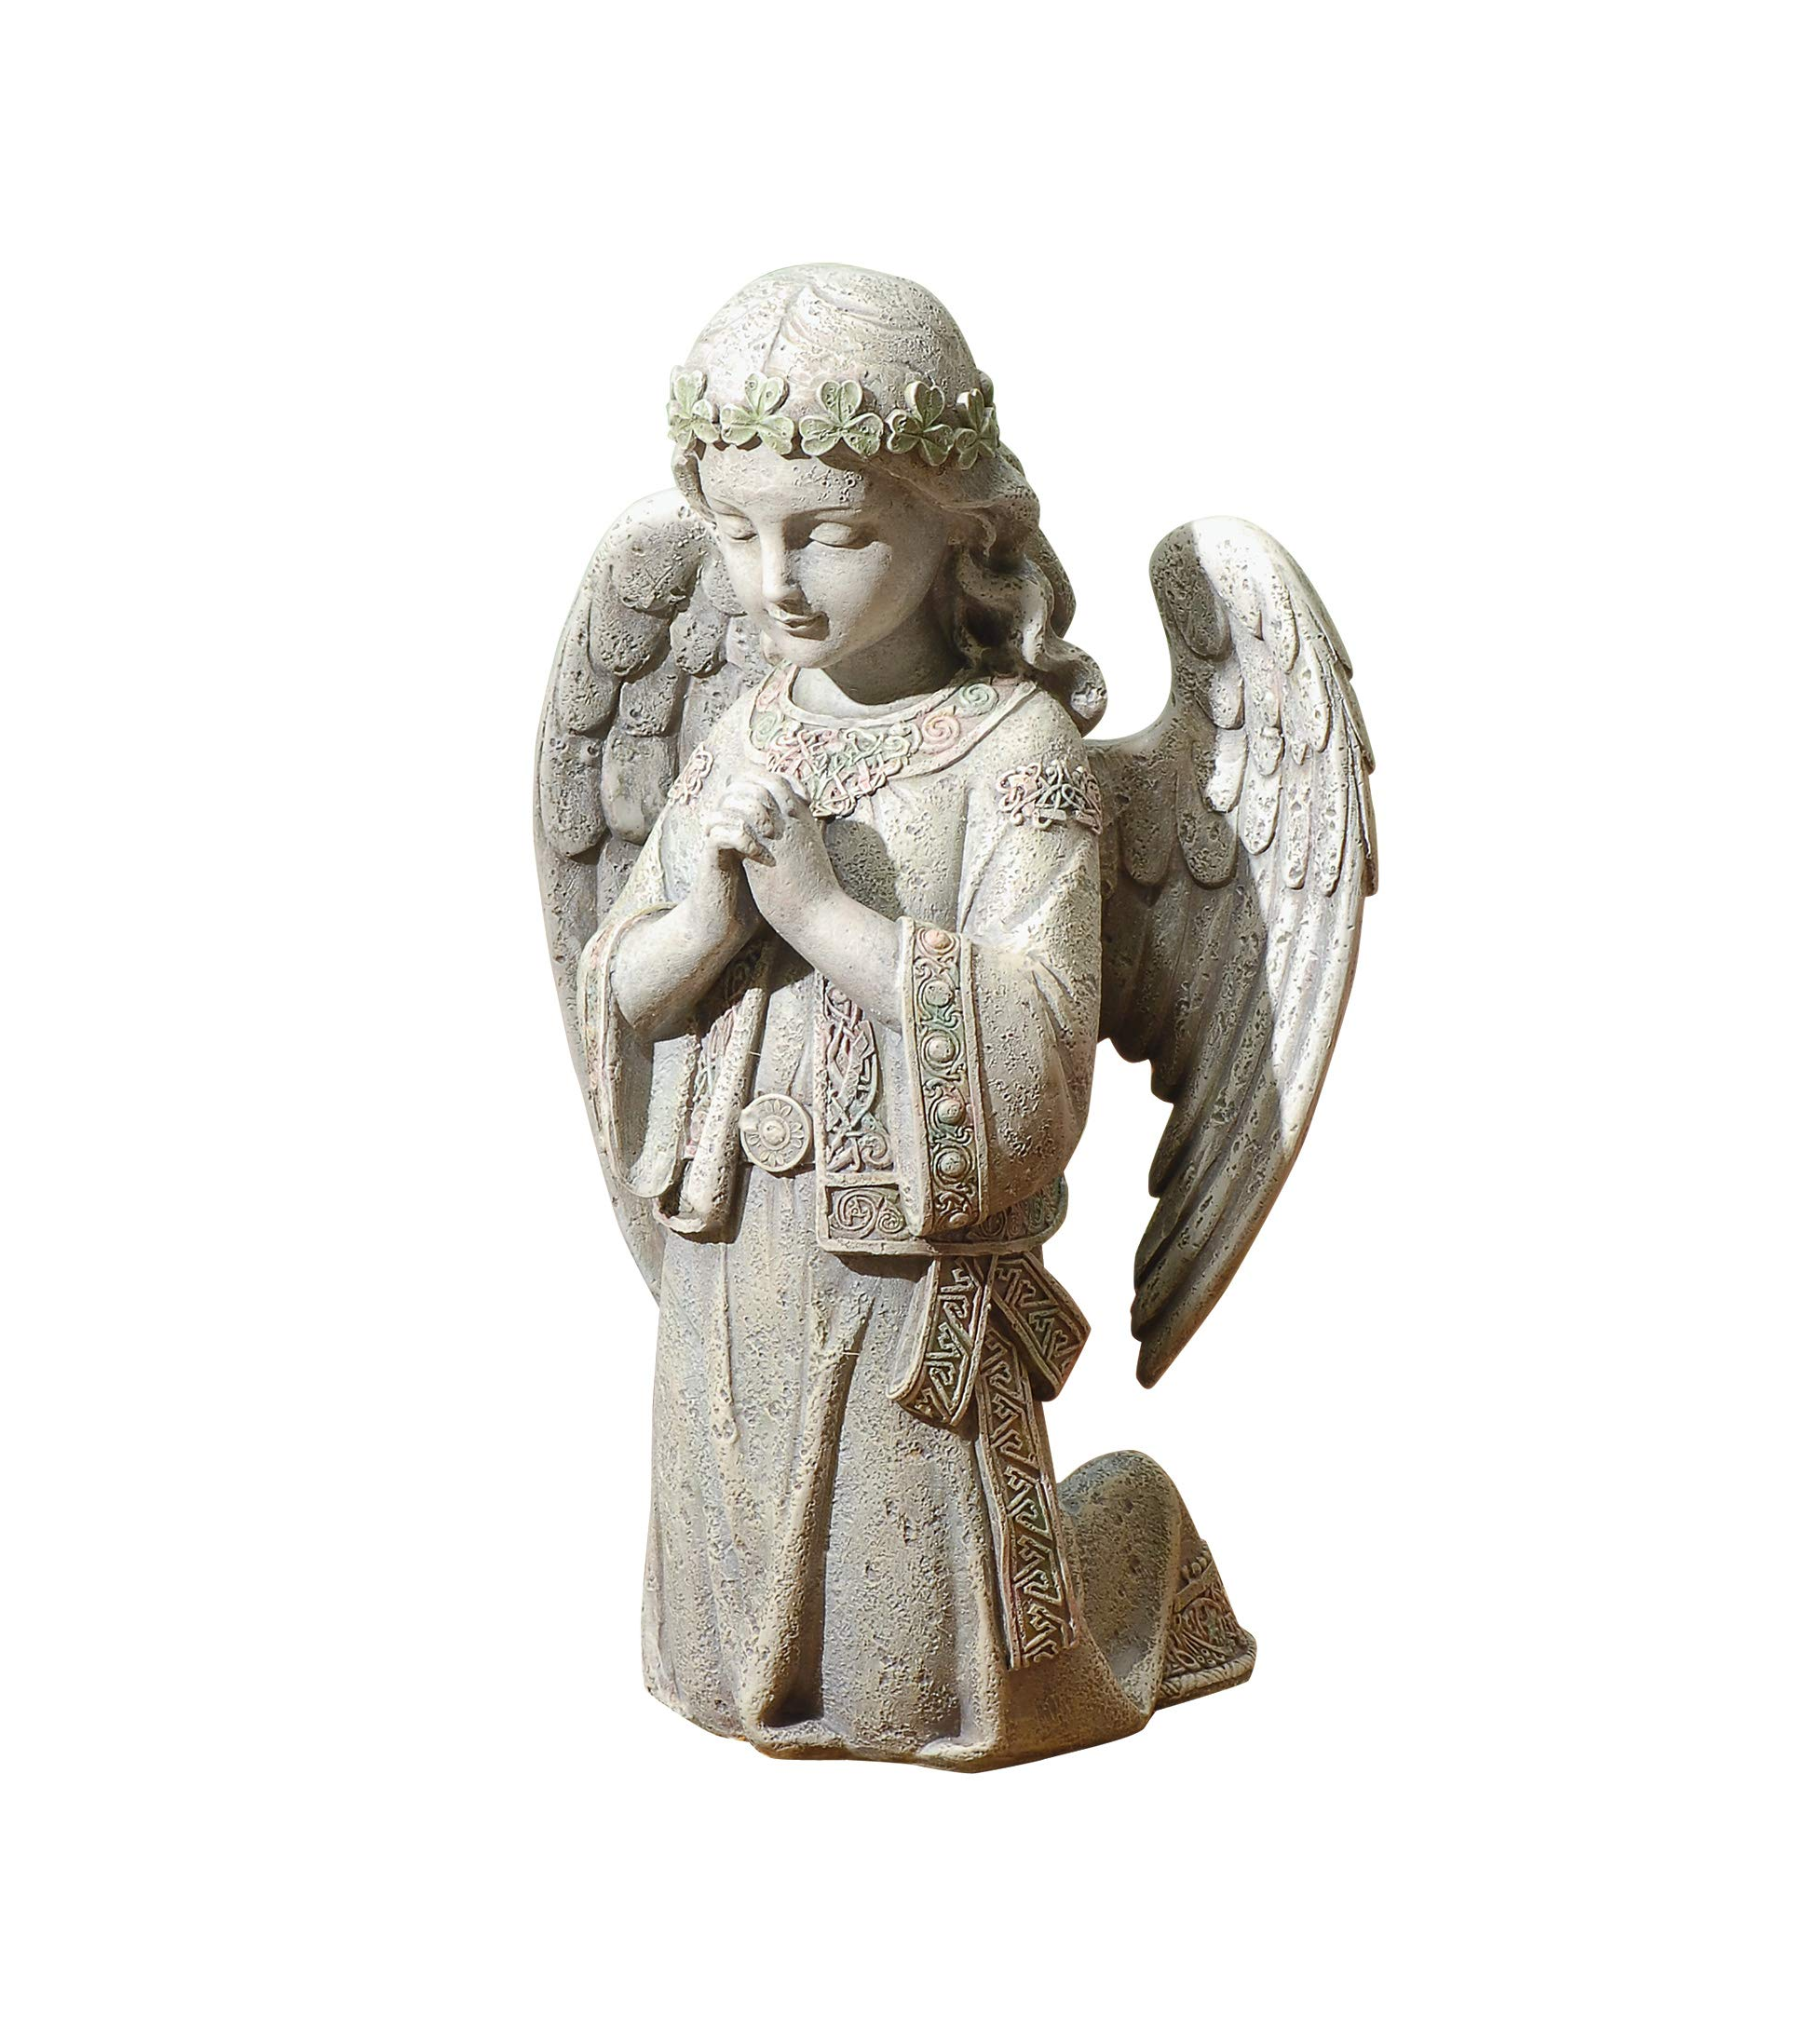 Joseph S Studio By Roman Collection 12 25 H Celtic Kneeling Angel Made From Resin High Level Of Craftsmanship And Attention To Detail Durable And Long Lasting Home Kitchen